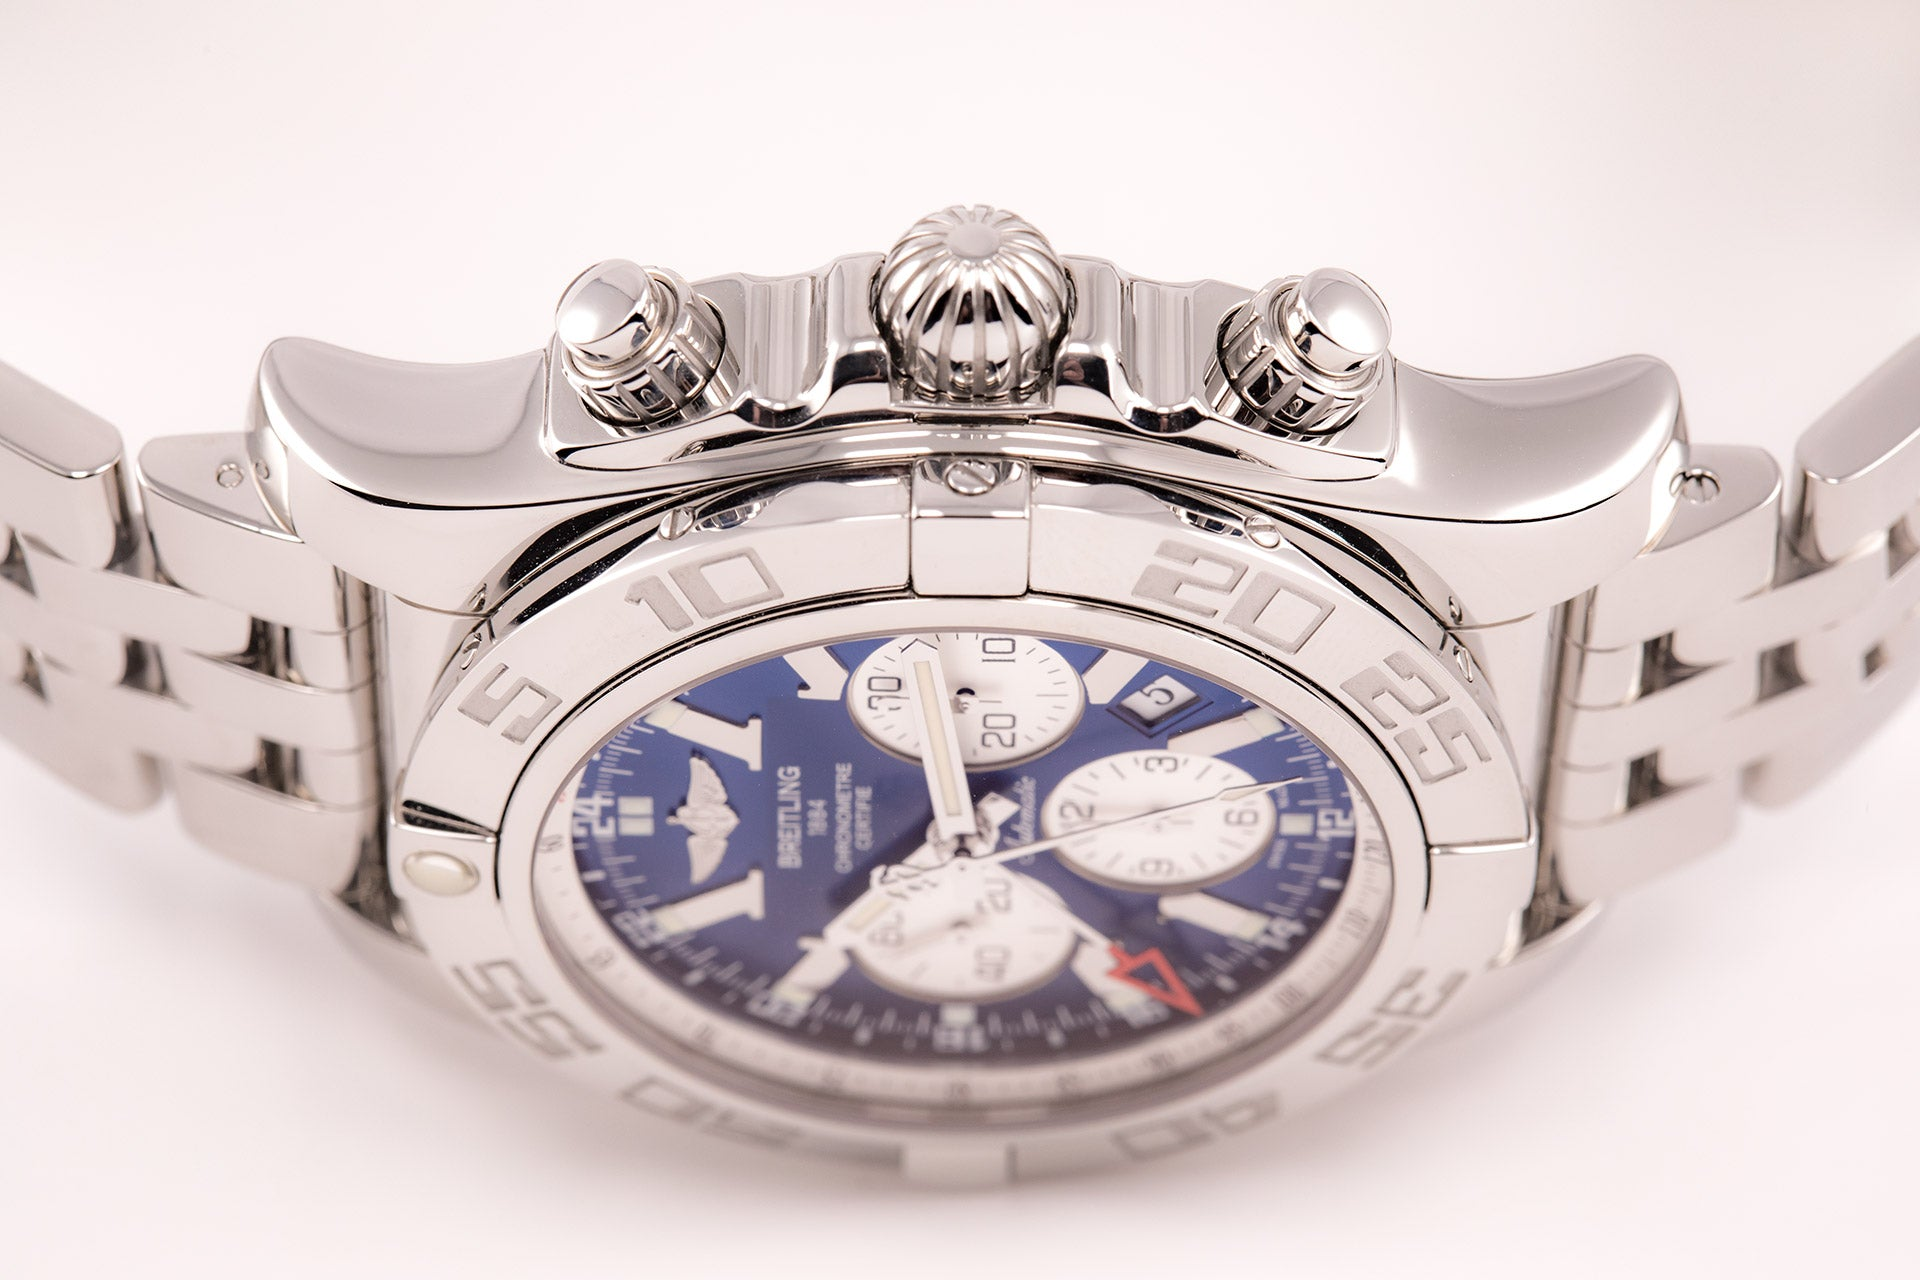 Breitling Chronomat GMT Blue Dial Automatic In-House 47 Large Size